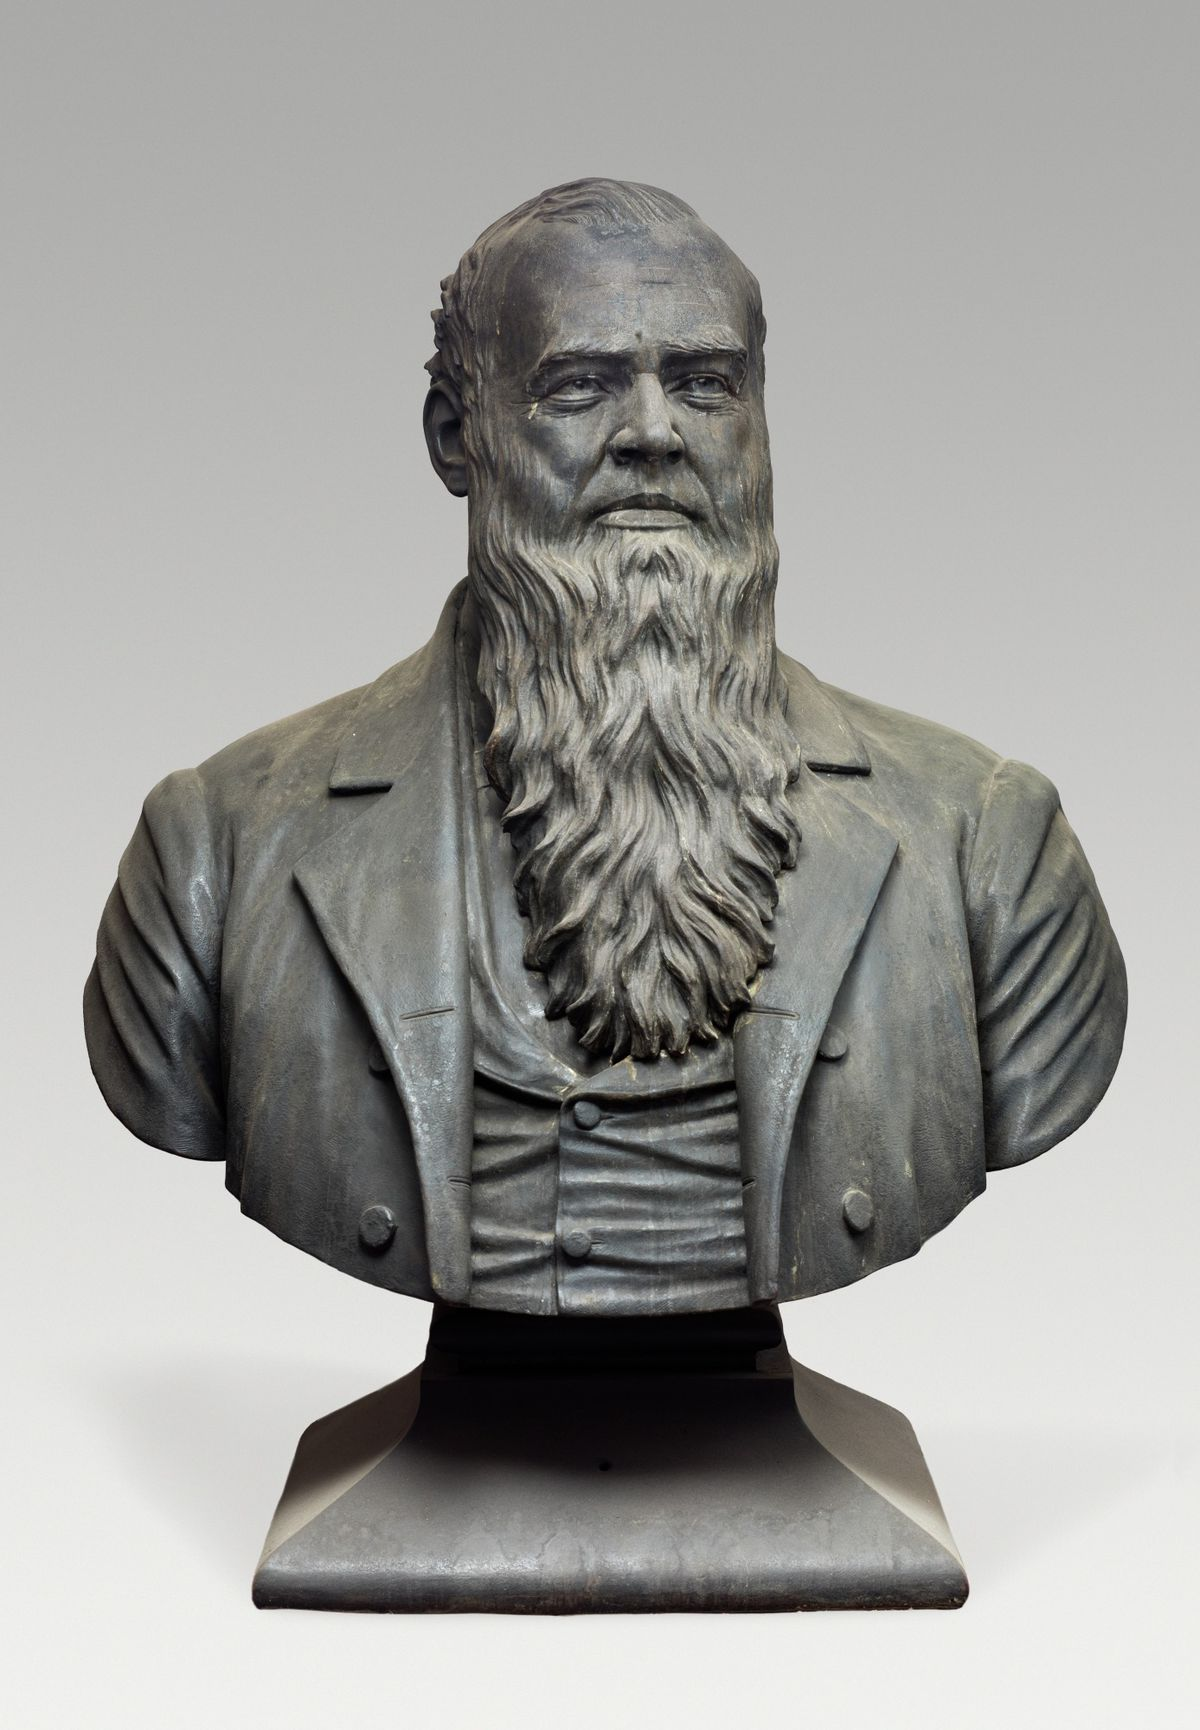 A bronze bust of the torso and head of a long-bearded, bald man in a three-piece suit.